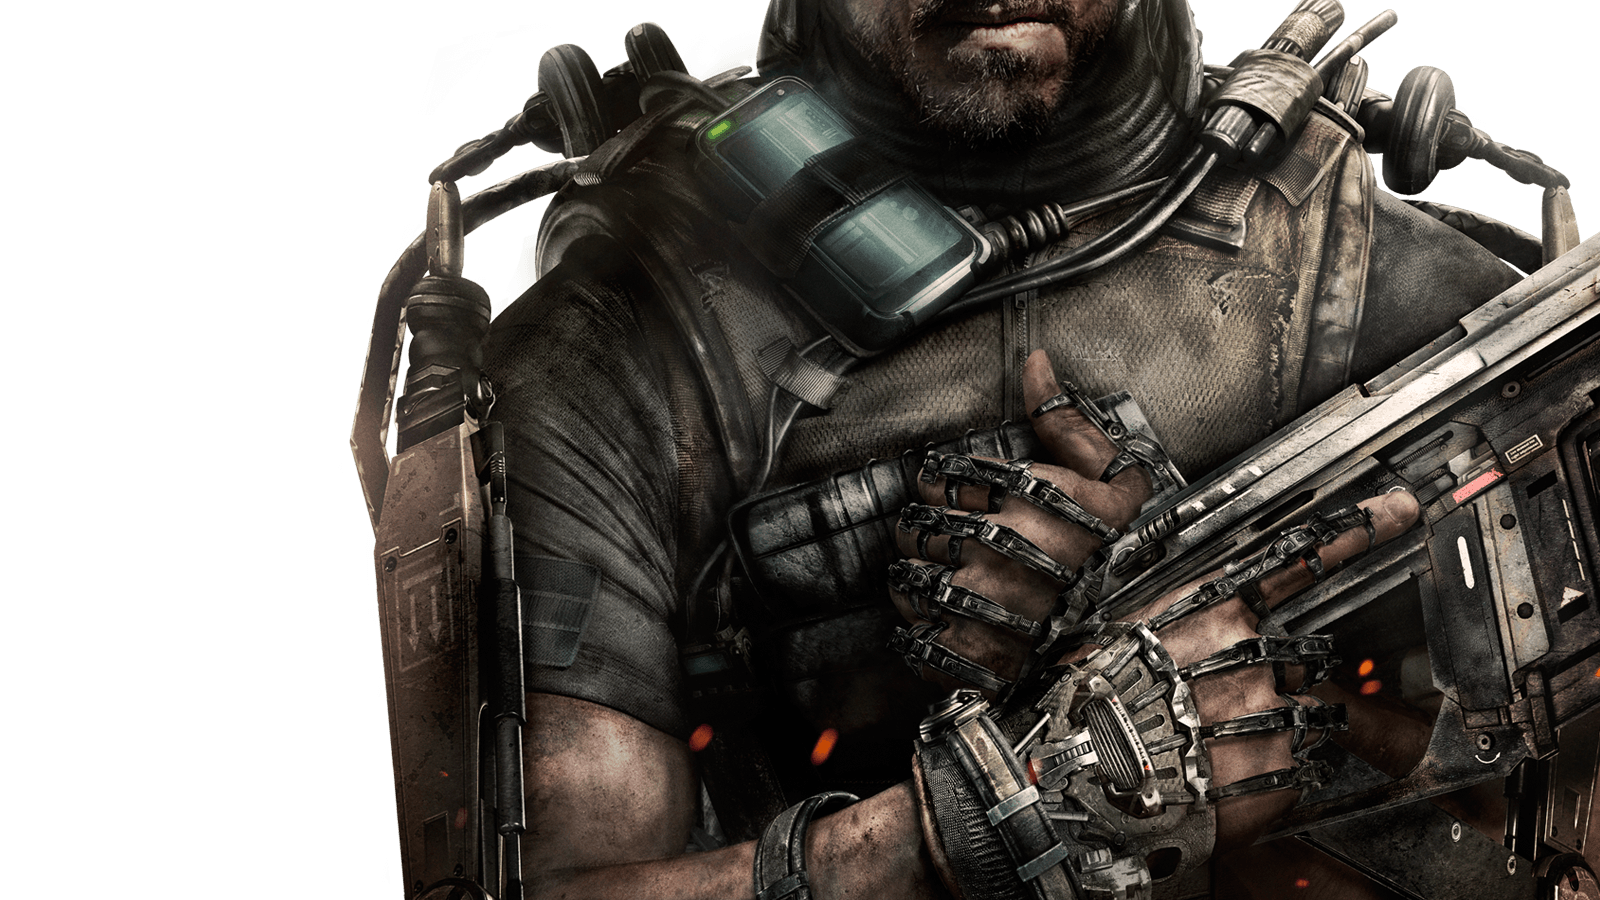 Image Gallery Bo3 Soldier